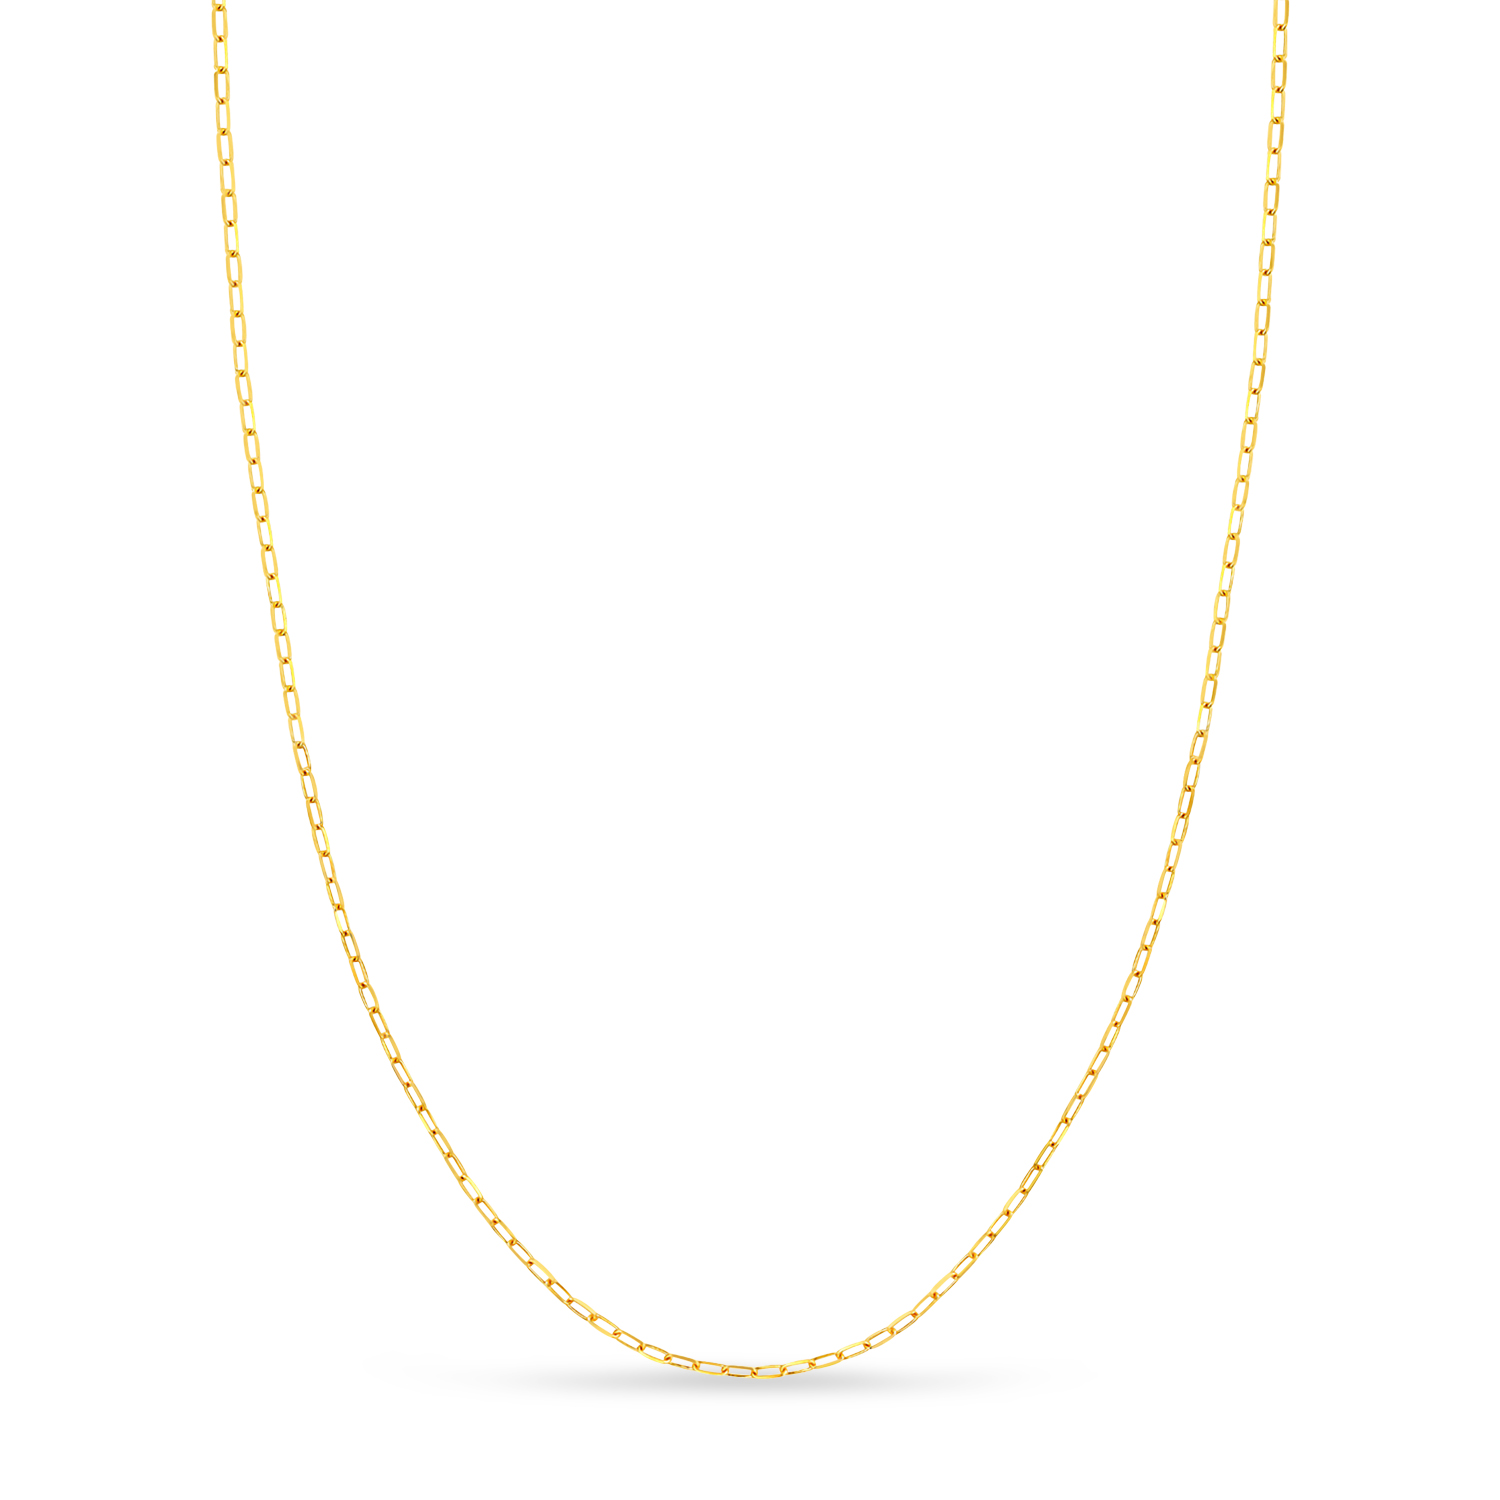 Paperclip Link Chain Necklace With Lobster Lock 14k Yellow Gold